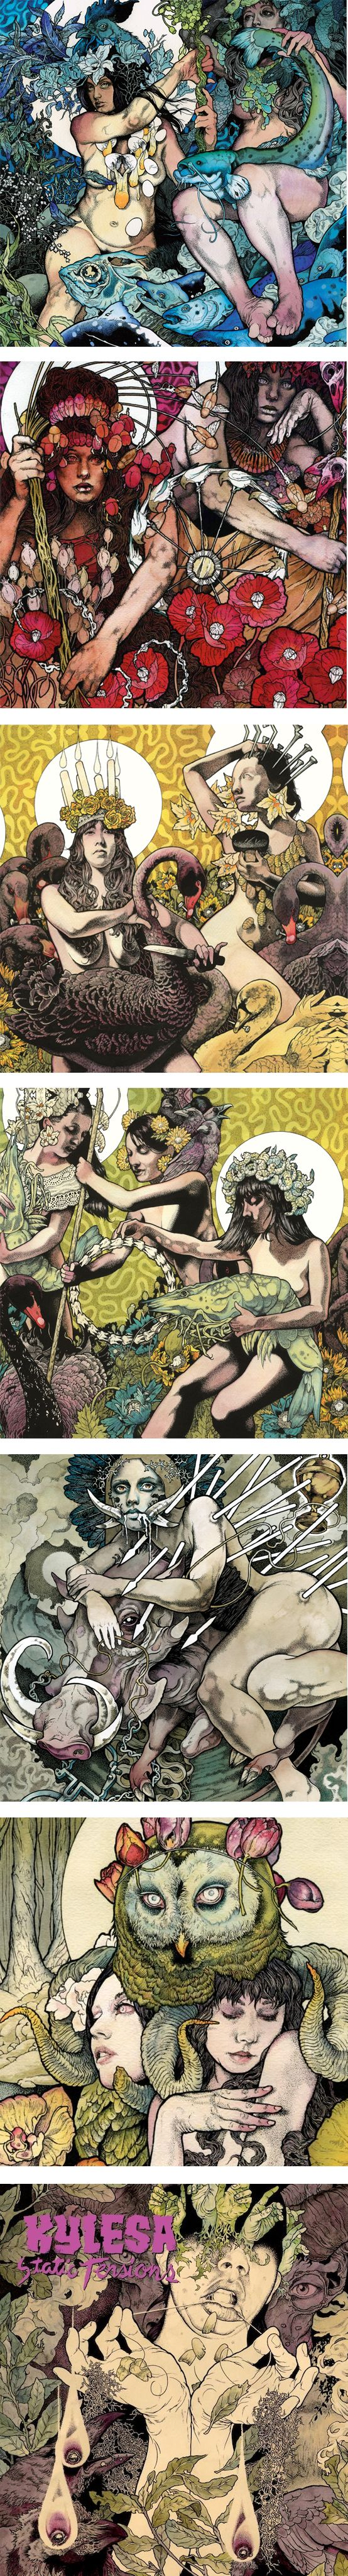 John  Dyer Baizle, Painter and Illustrator from the band Baroness.